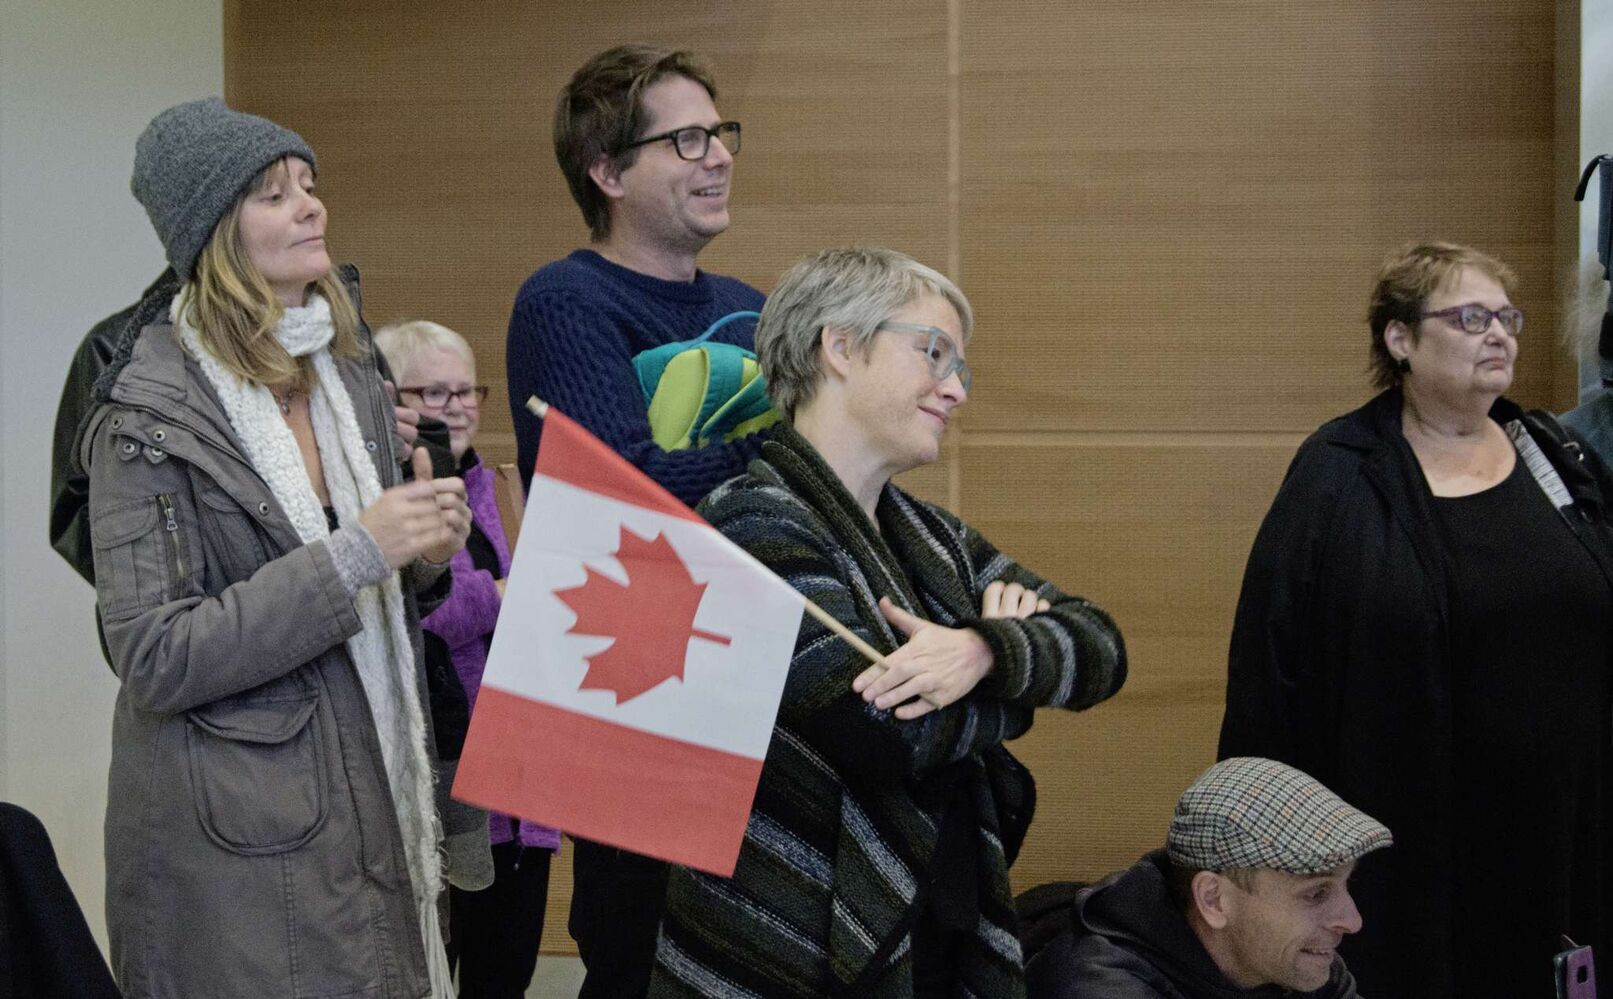 Sonya Jantz, Matthew Lawrence, and Paula Leslie watch as Al Abdellah is greeted by his aunt and uncle. (Danielle Da Silva - Sou'wester)